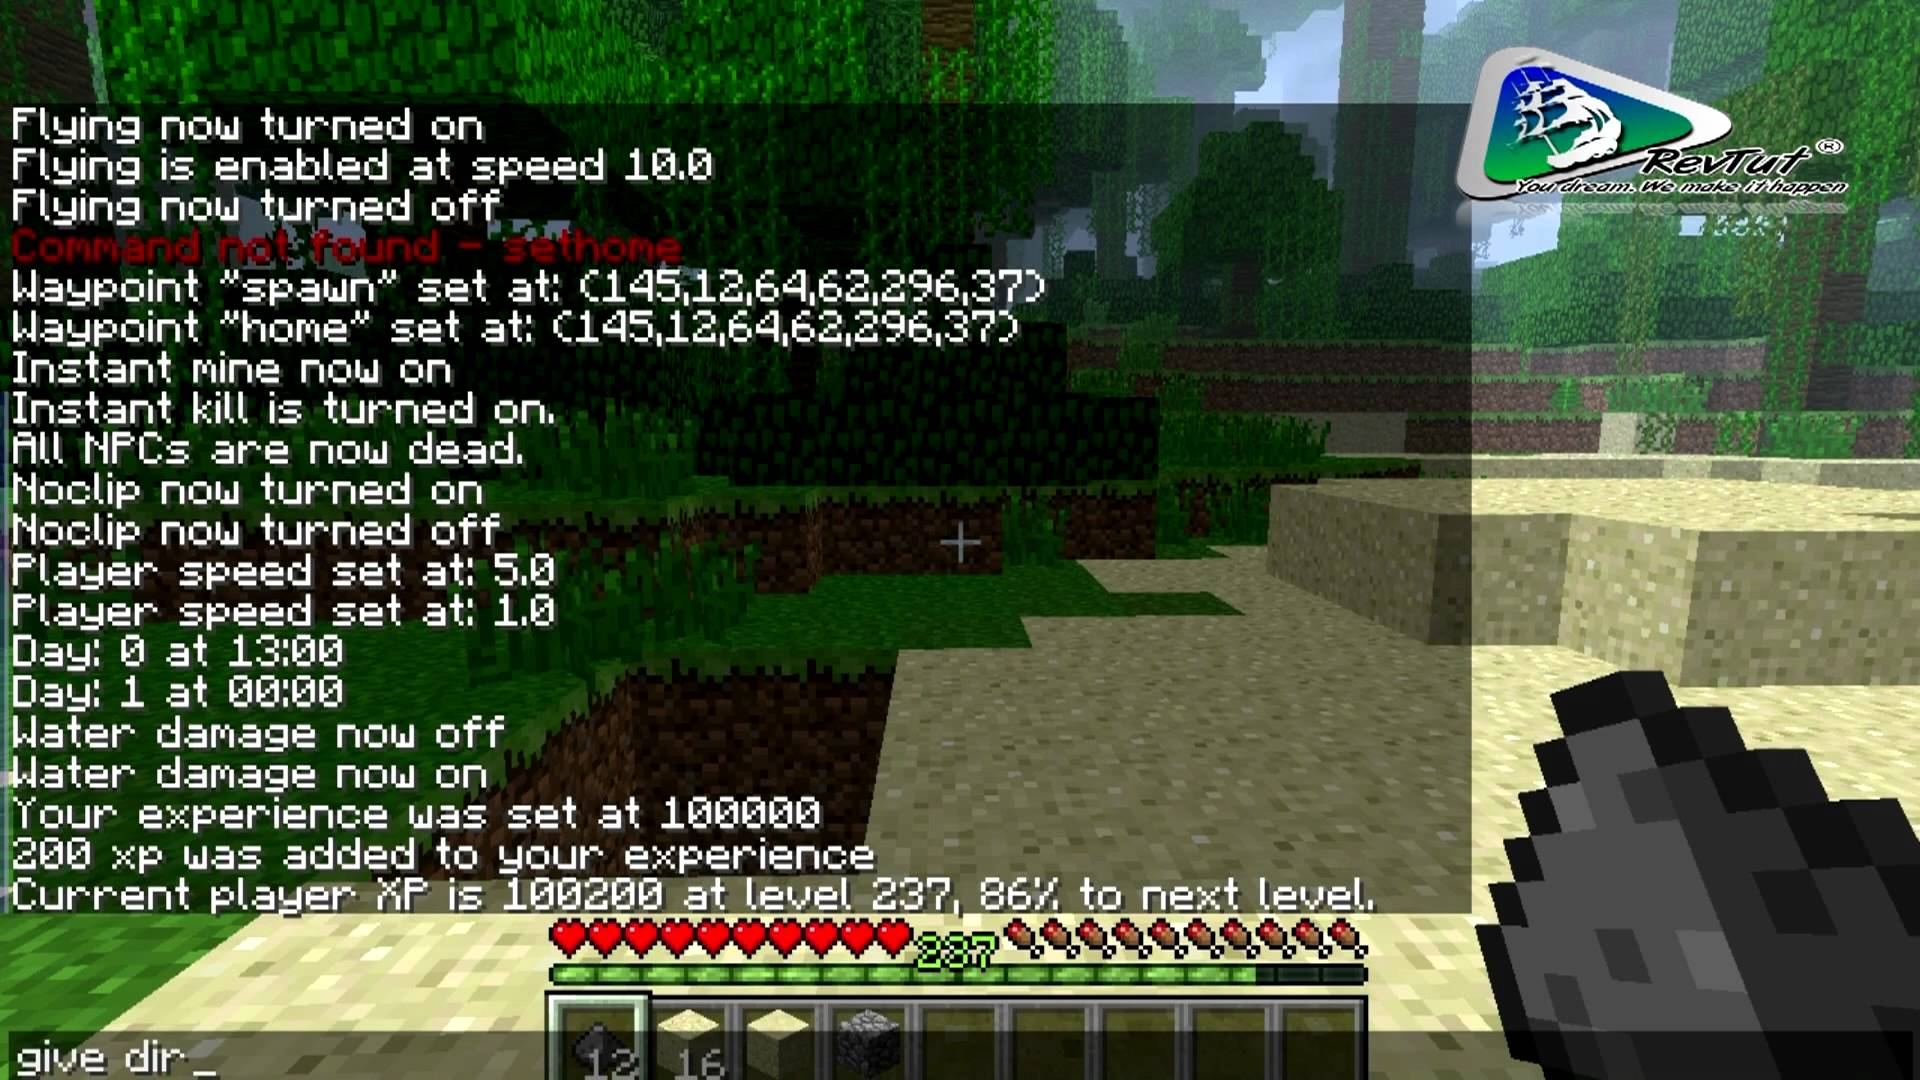 Multiplayer minecraft commands list minecraft command guide.